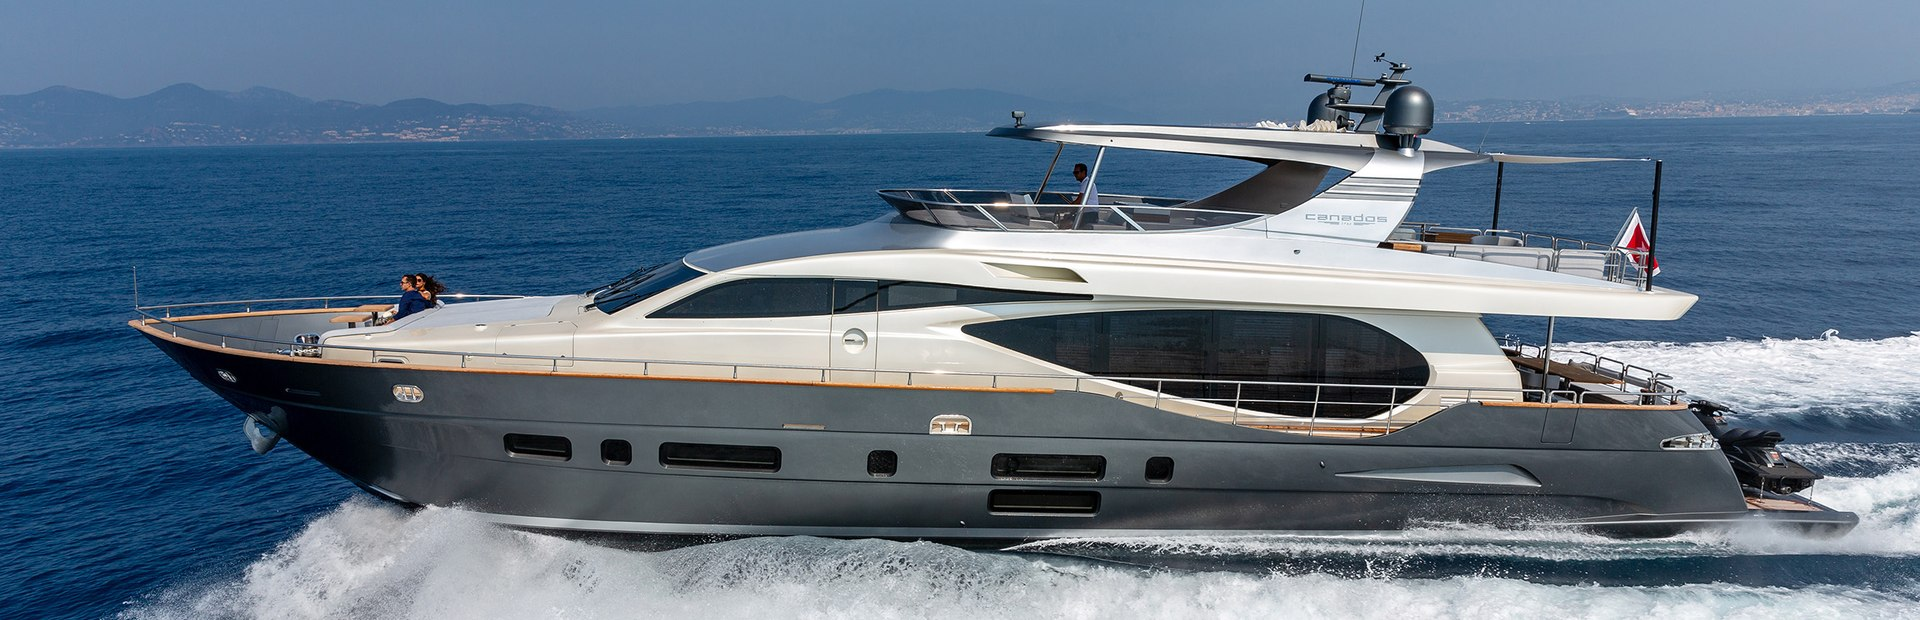 Canados 888 Evolution Yacht Charter